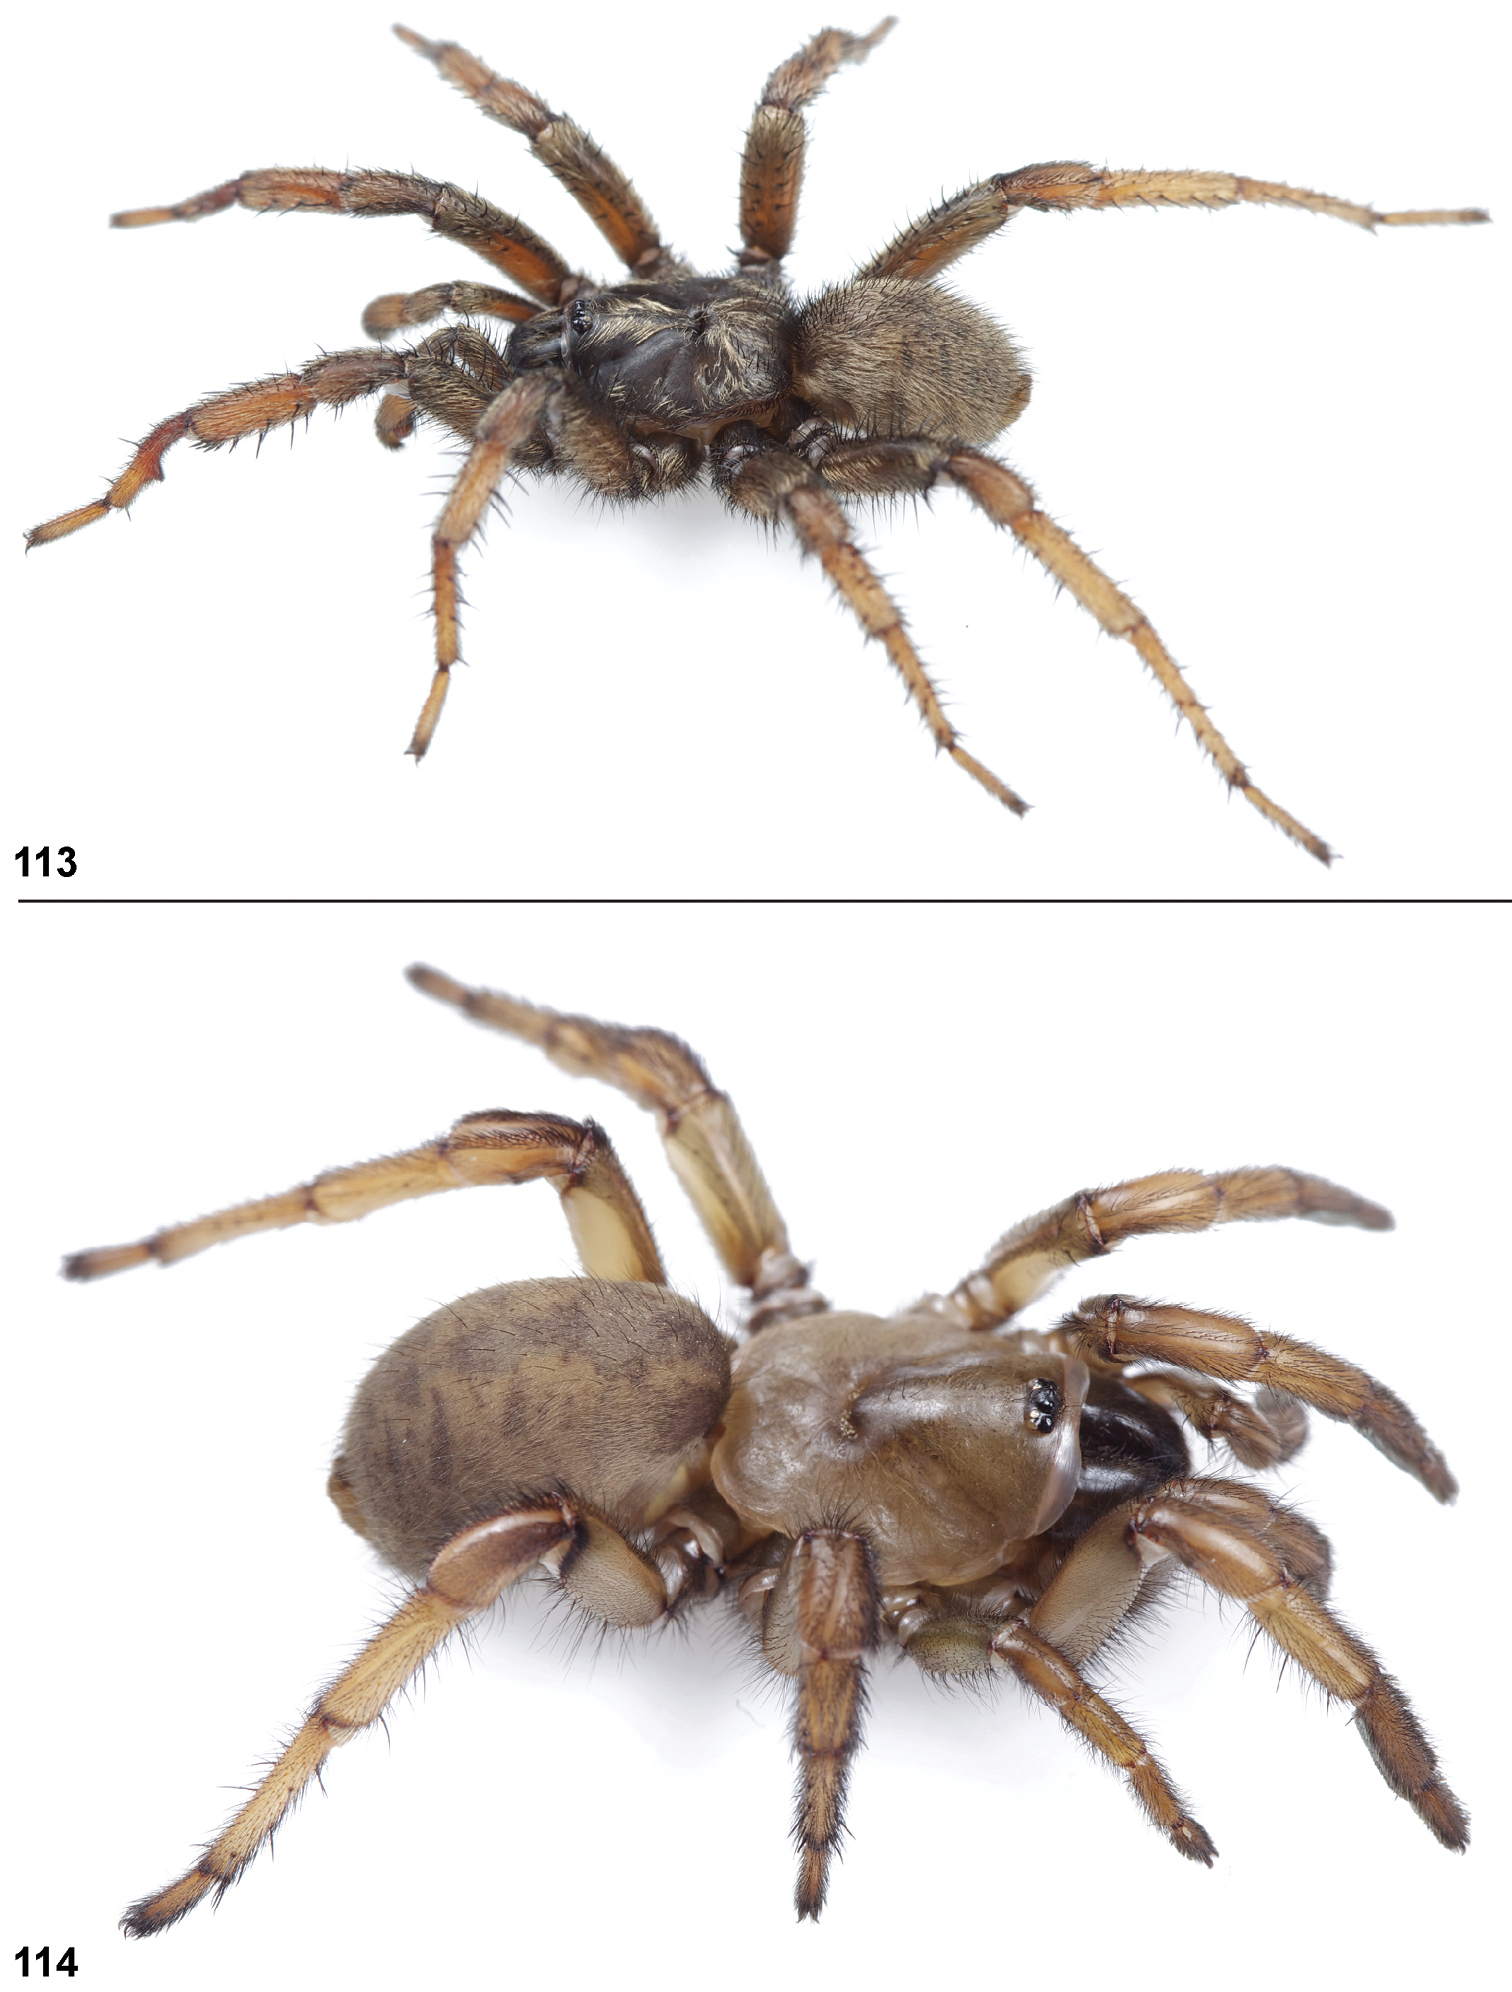 Phylogenetic Treatment And Taxonomic Revision Of The Trapdoor Spider